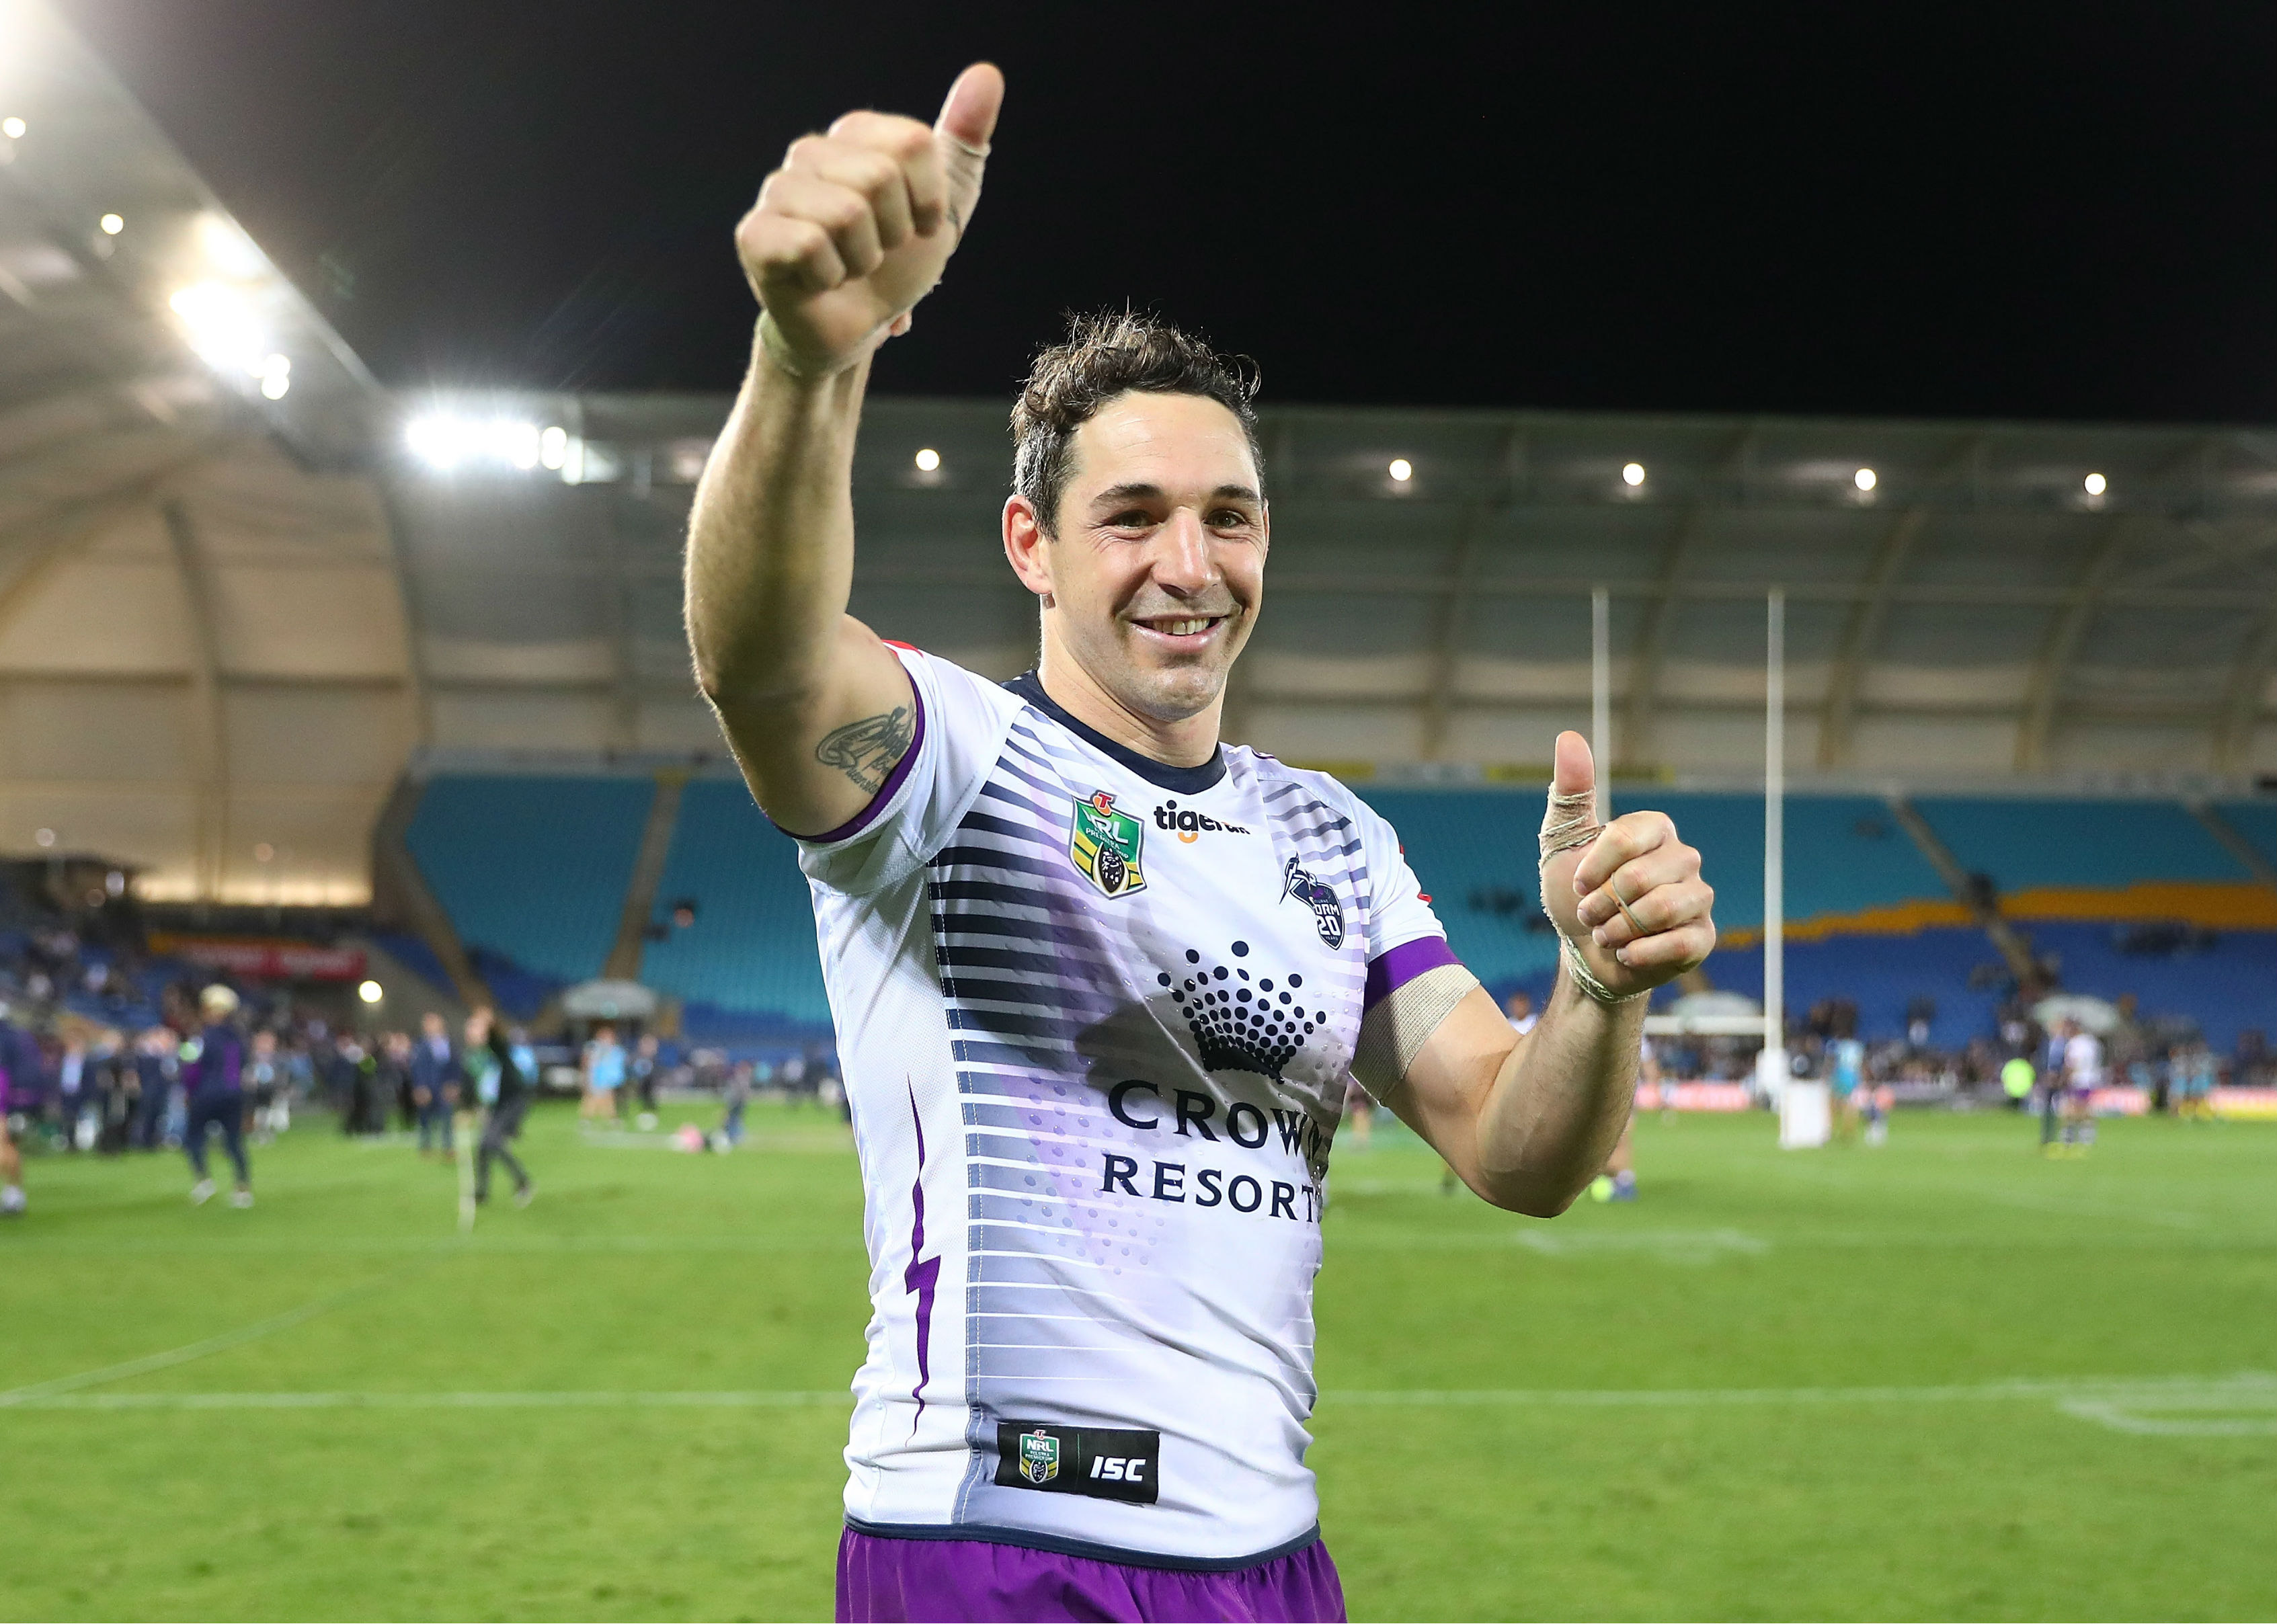 Slater stars in Queensland farewell as Storm cement top-four berth